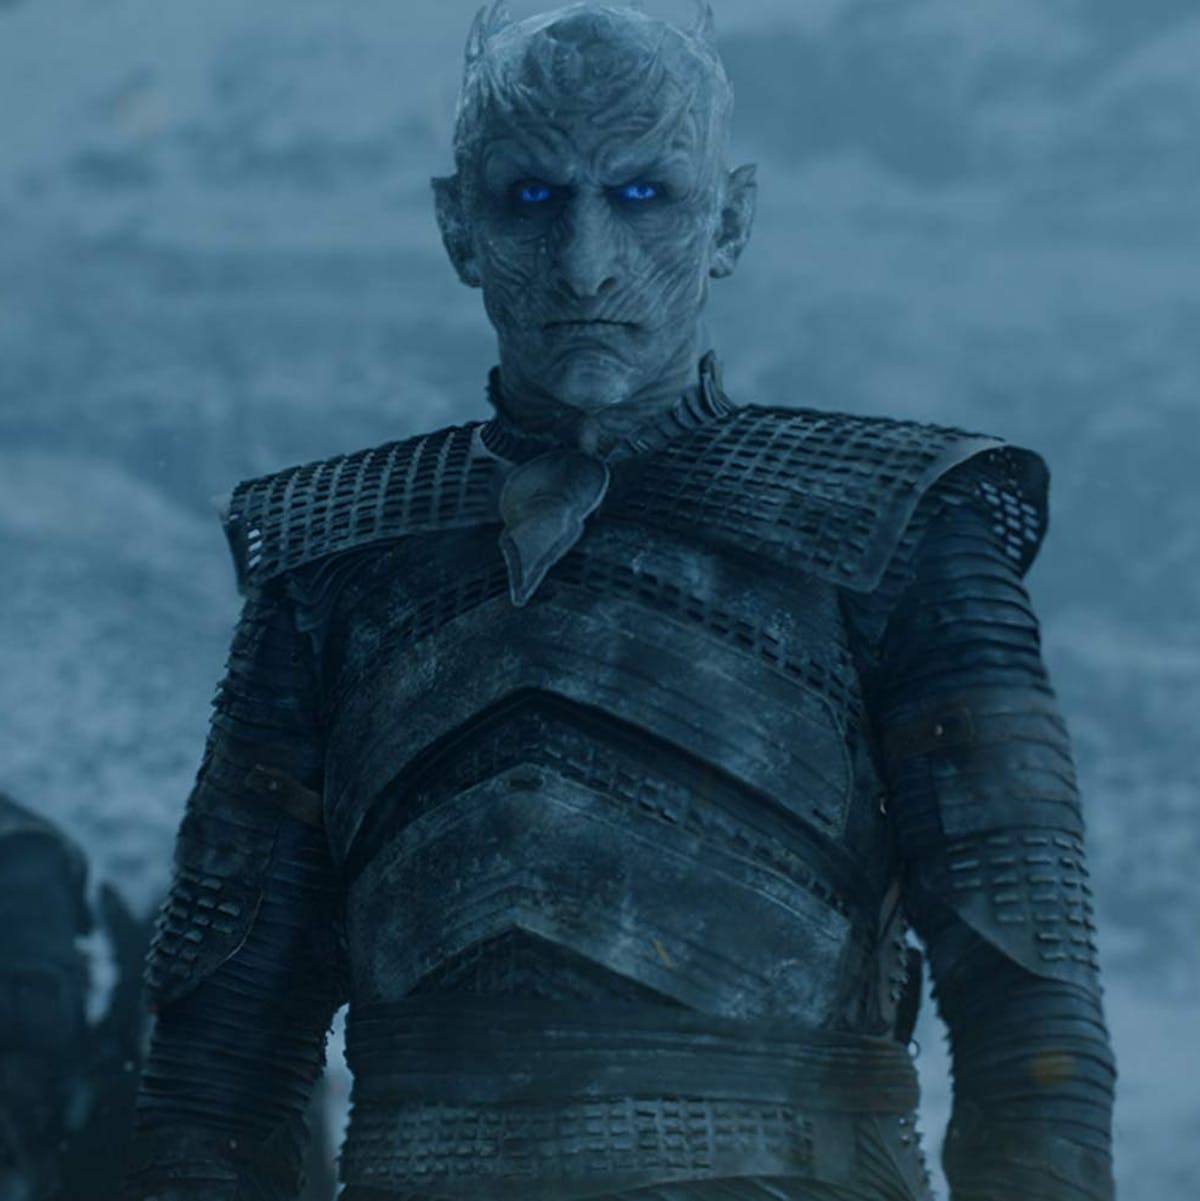 'Game of Thrones' Prequel Series Spoilers Tease the Night King's New Role